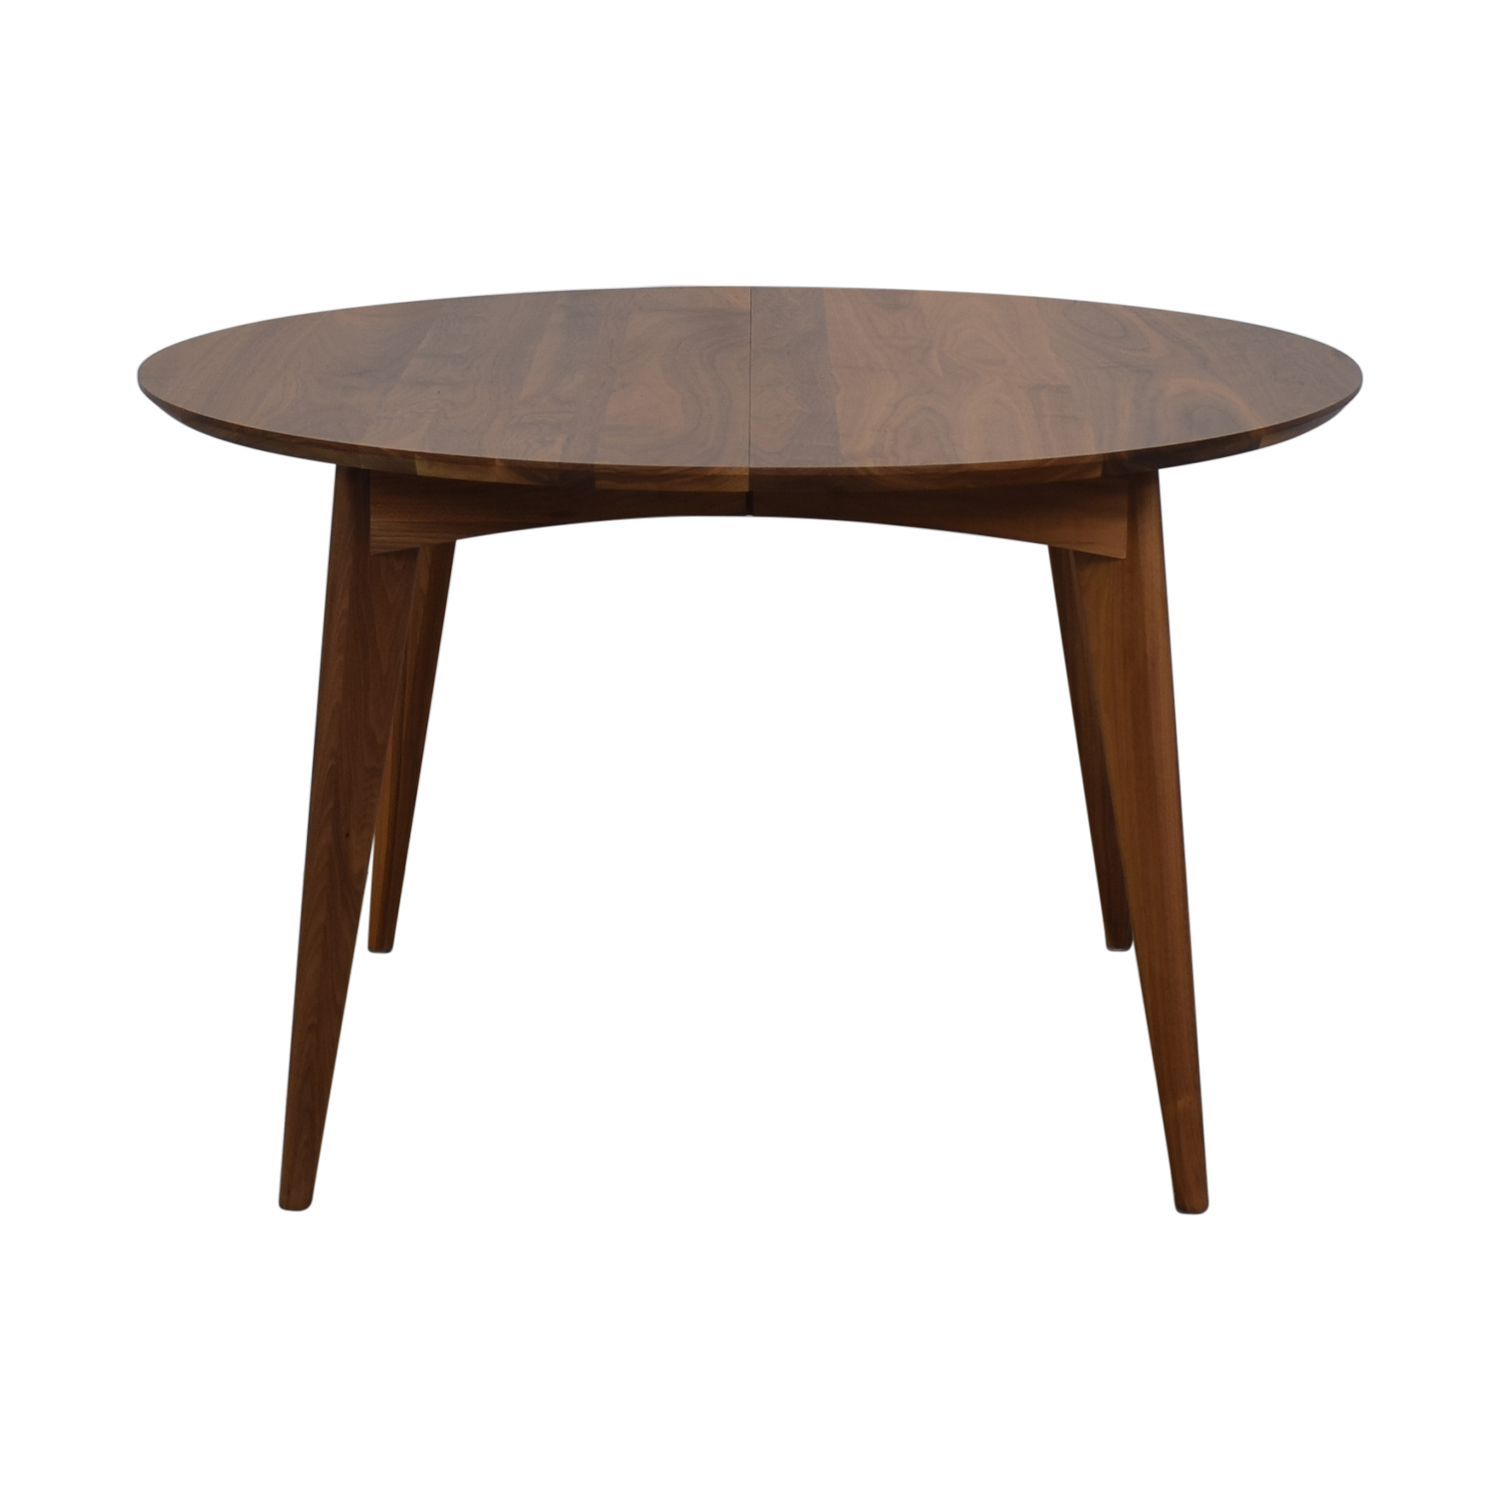 Room & Board Room & Board Ventura Round Extension Table